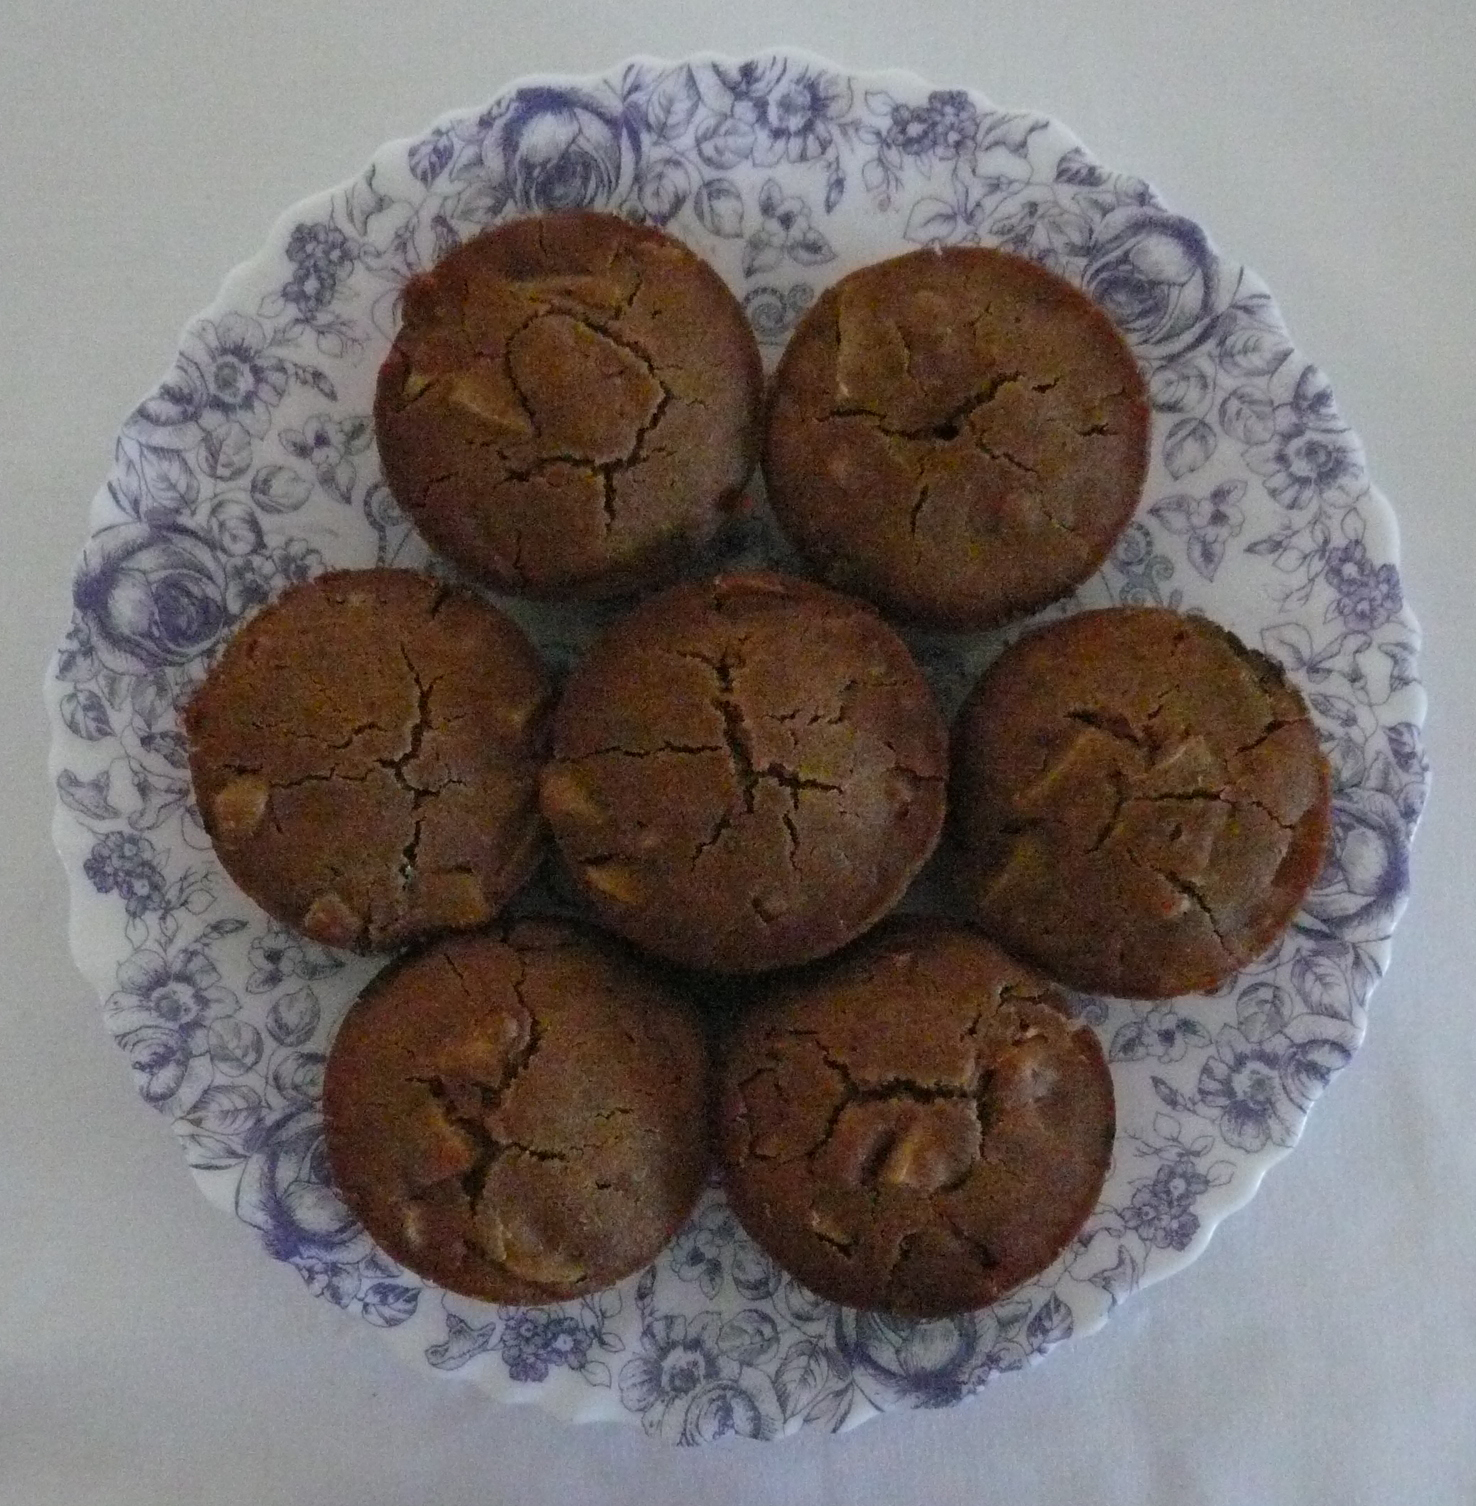 Apple and mango muffins in a plate